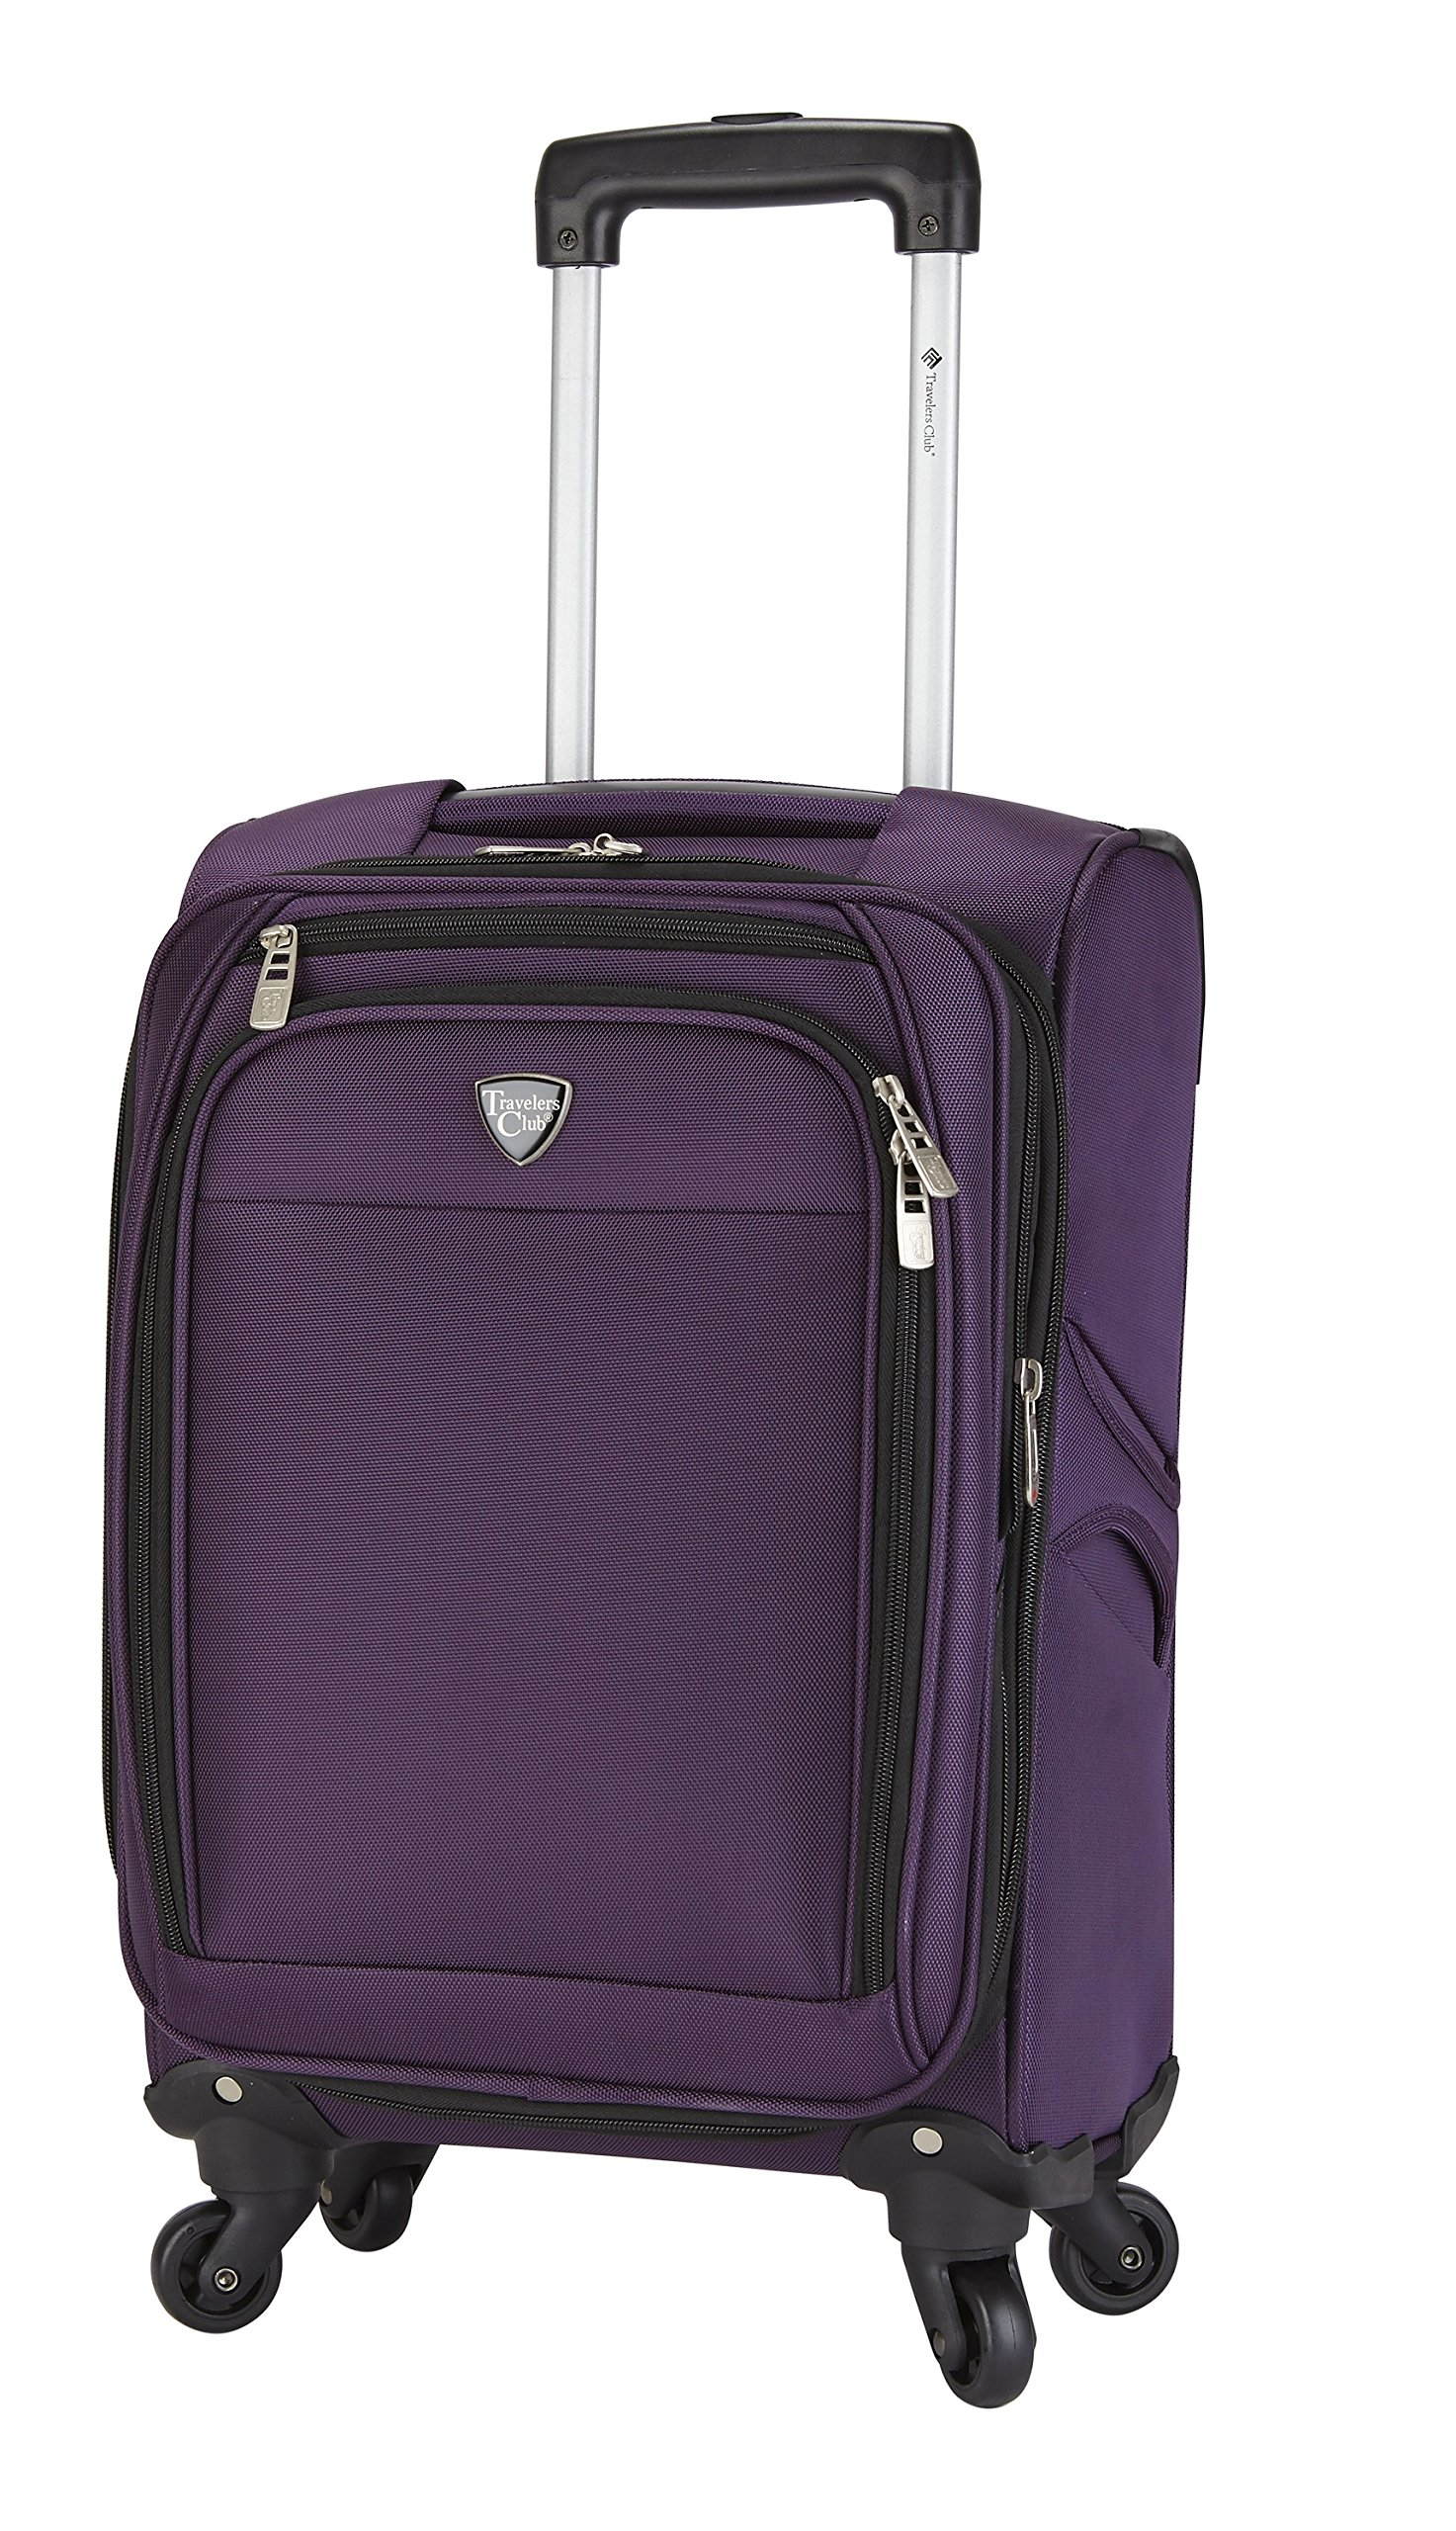 Travelers Club 18'' Carry-On Spinner Luggage Constructed with Top Durable Fabric, Purple Color Option